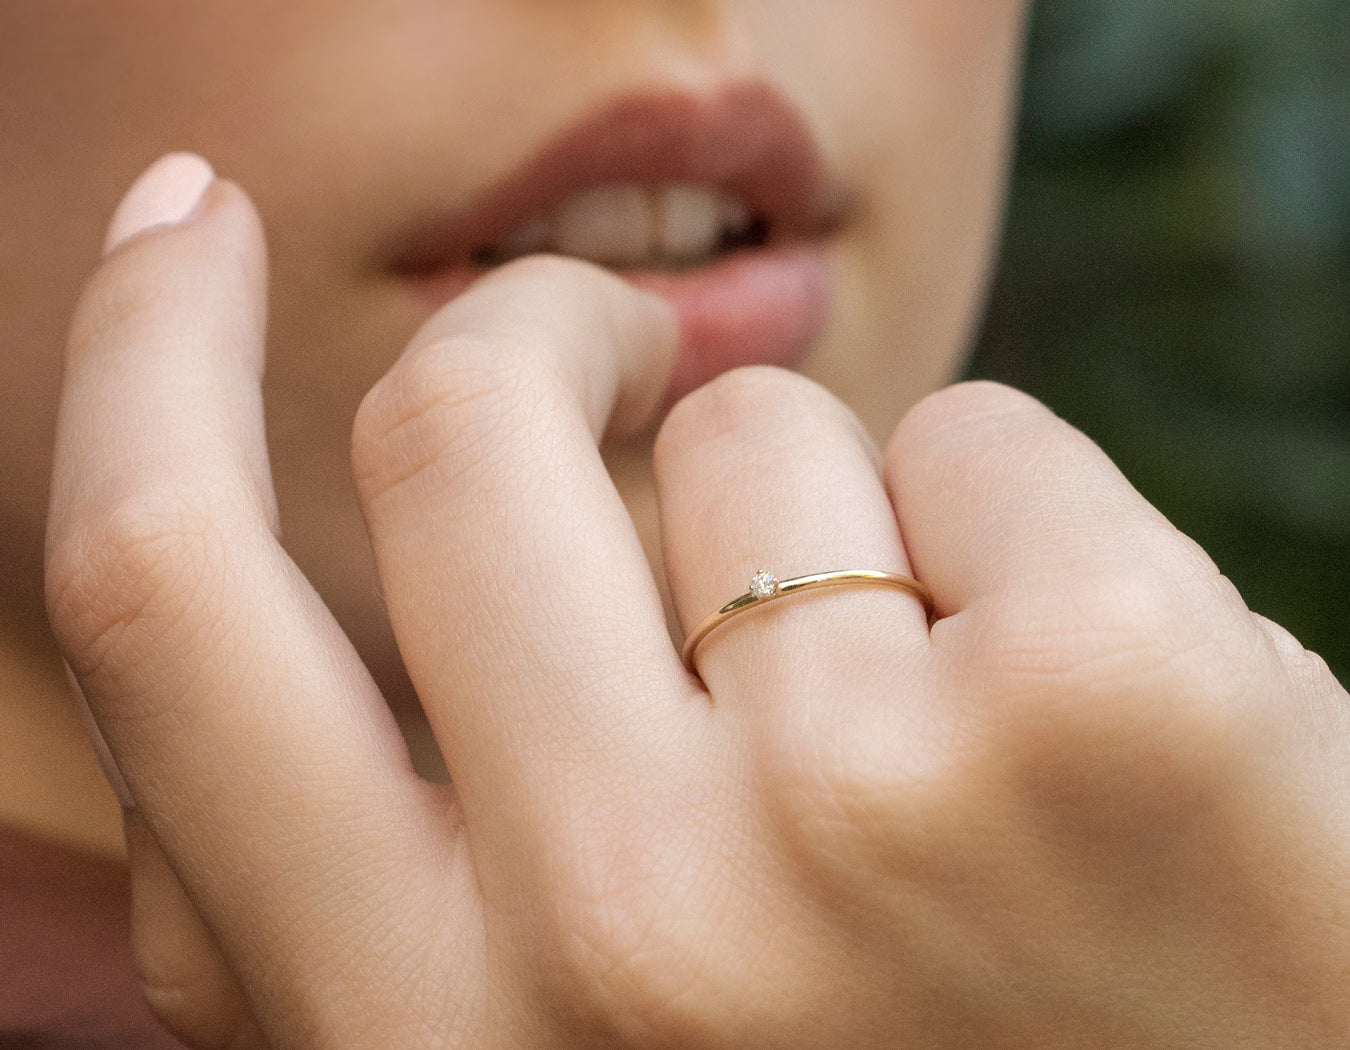 Woman modelling simple sophisticated 14k yellow gold subtle Round Diamond Stacker ring by Vrai & Oro